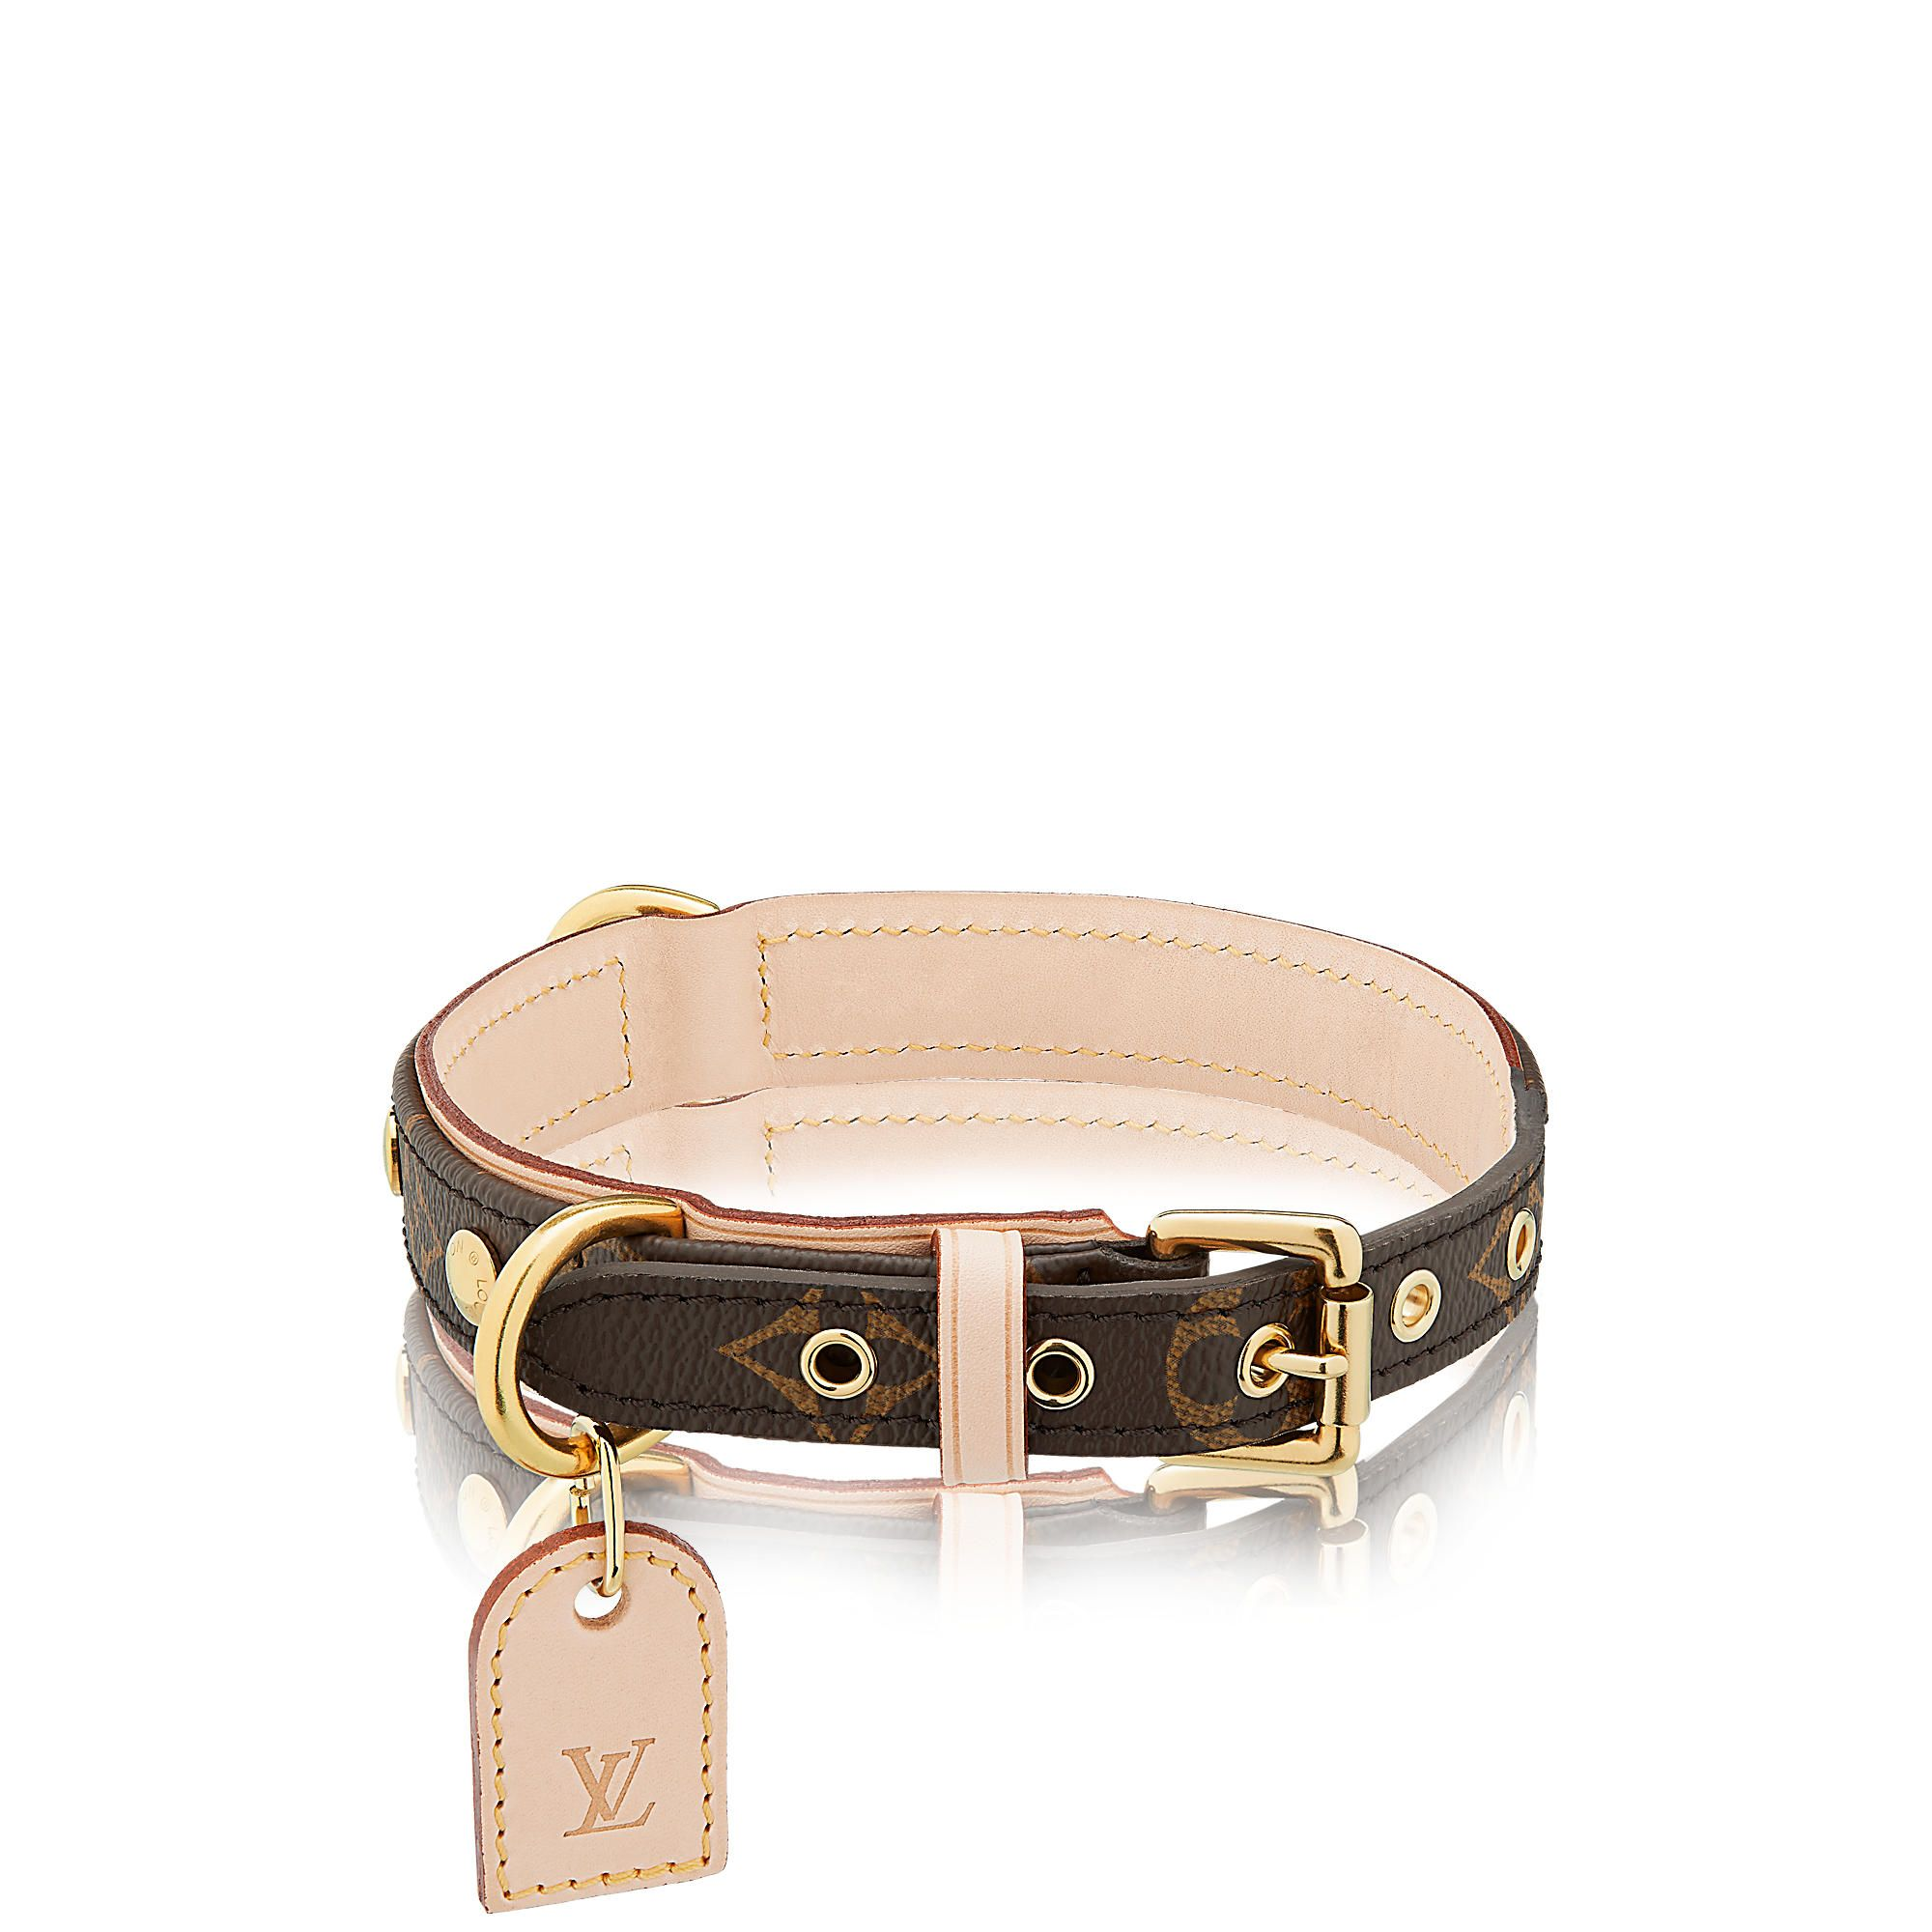 61ba5bbb2539 Discover Louis Vuitton Baxter Dog Collar MM via Louis Vuitton ...